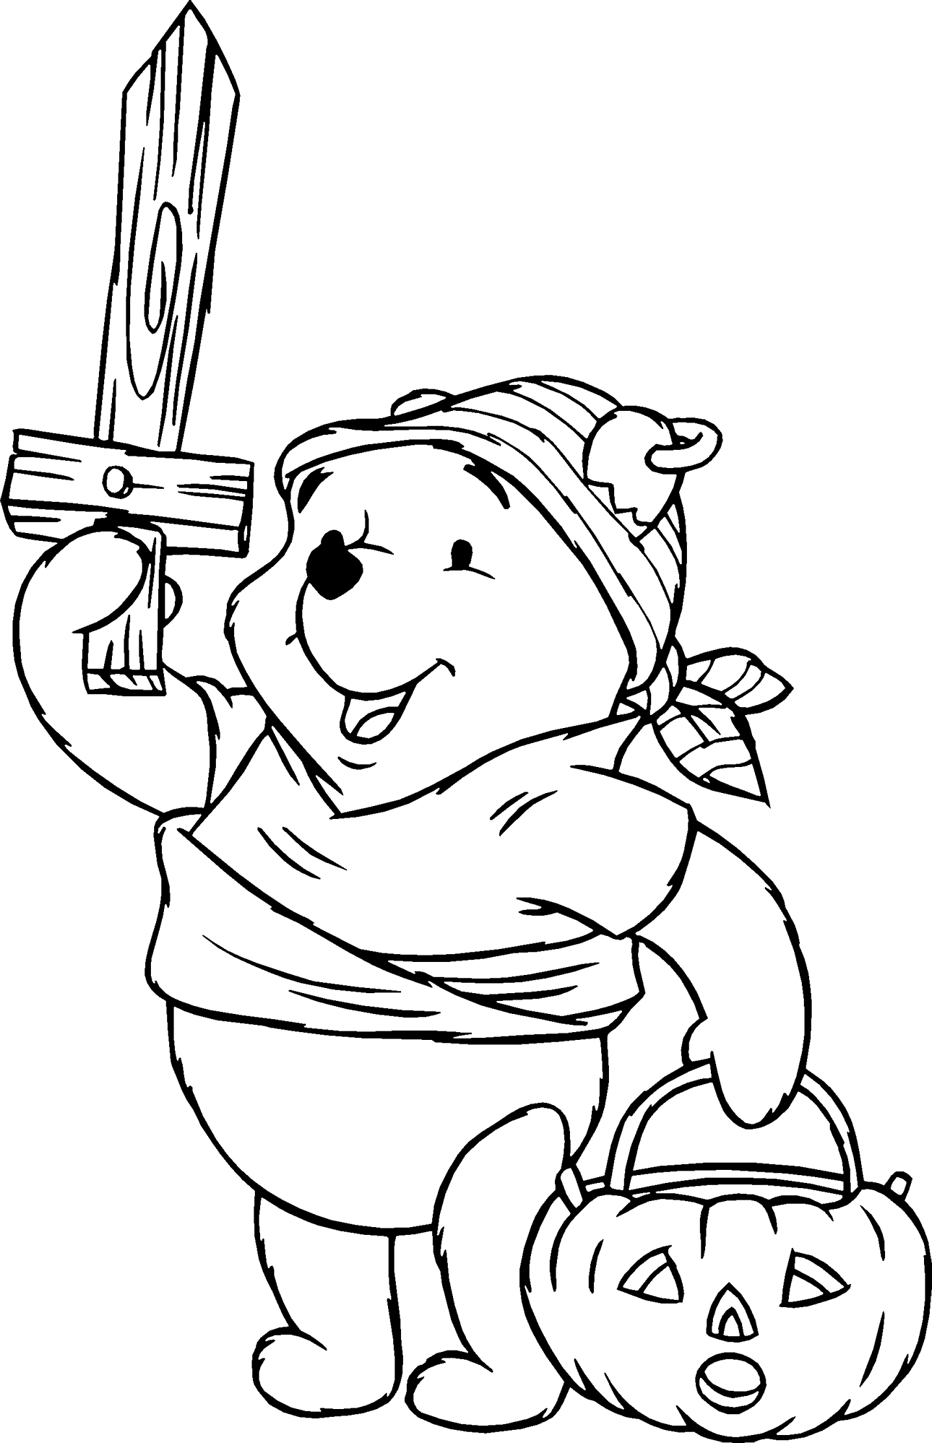 Pooh halloween coloring pages disney coloring pages for Coloring pages for halloween free printable